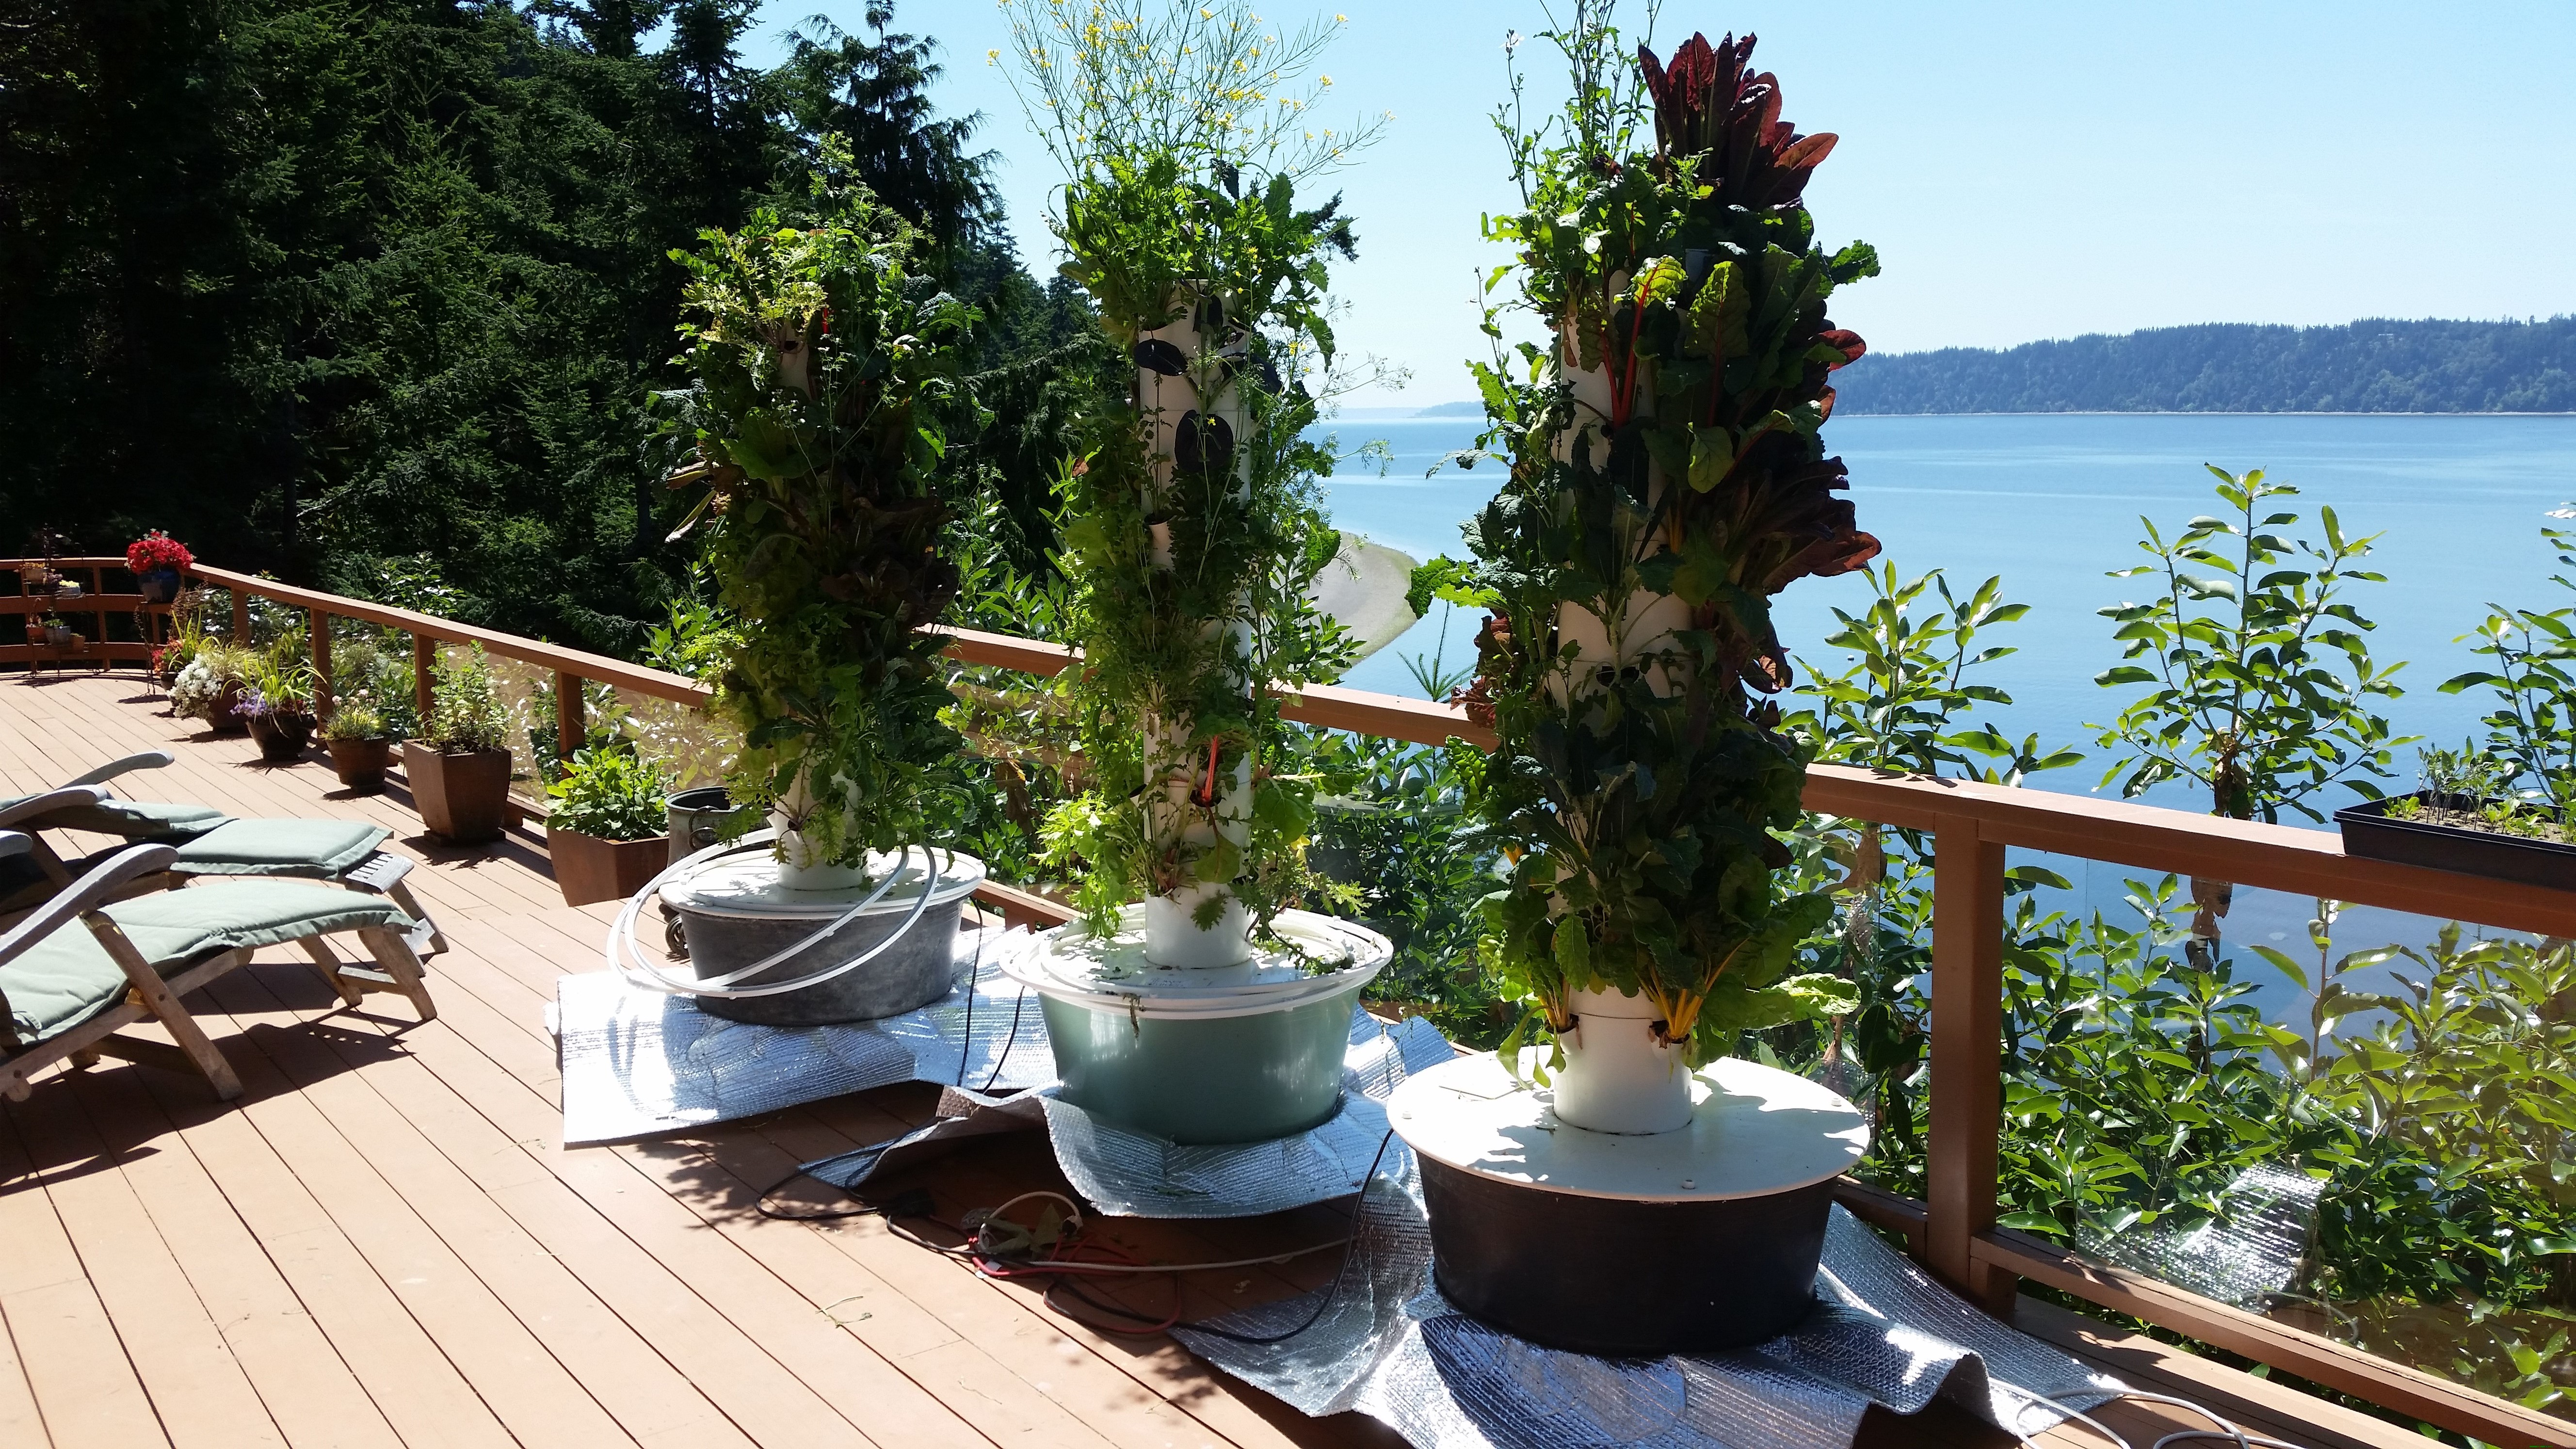 Photo of 3 Tower Gardens with sun reflectors around their bases.